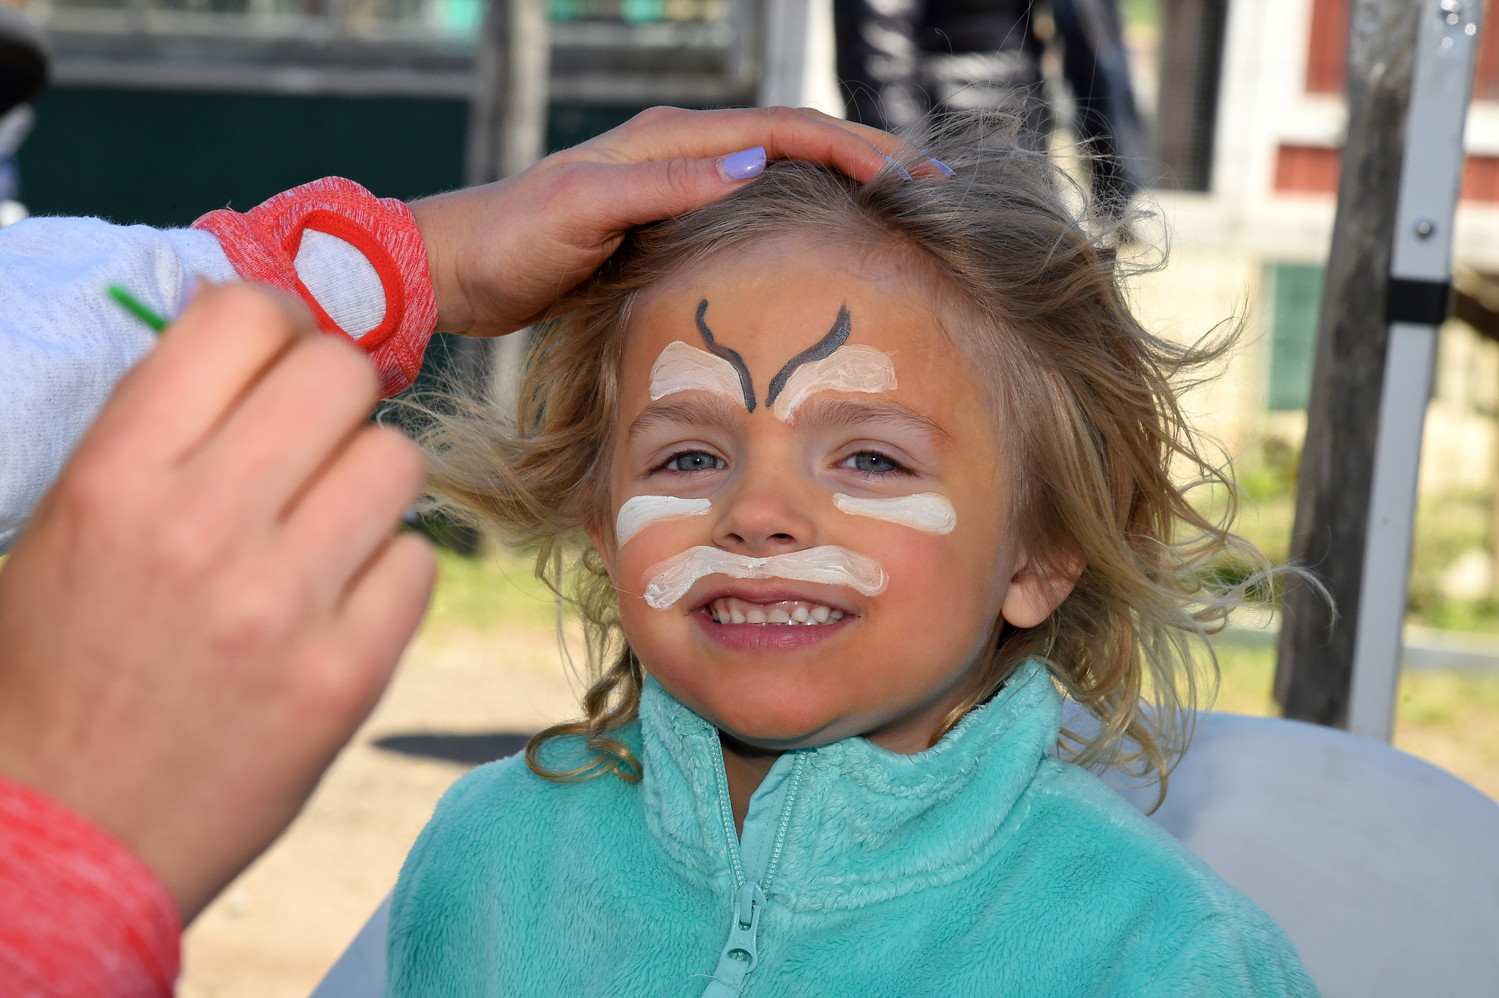 Six-year-old Senja Bullock had her face painted at last year's opening day celebration at the farm.